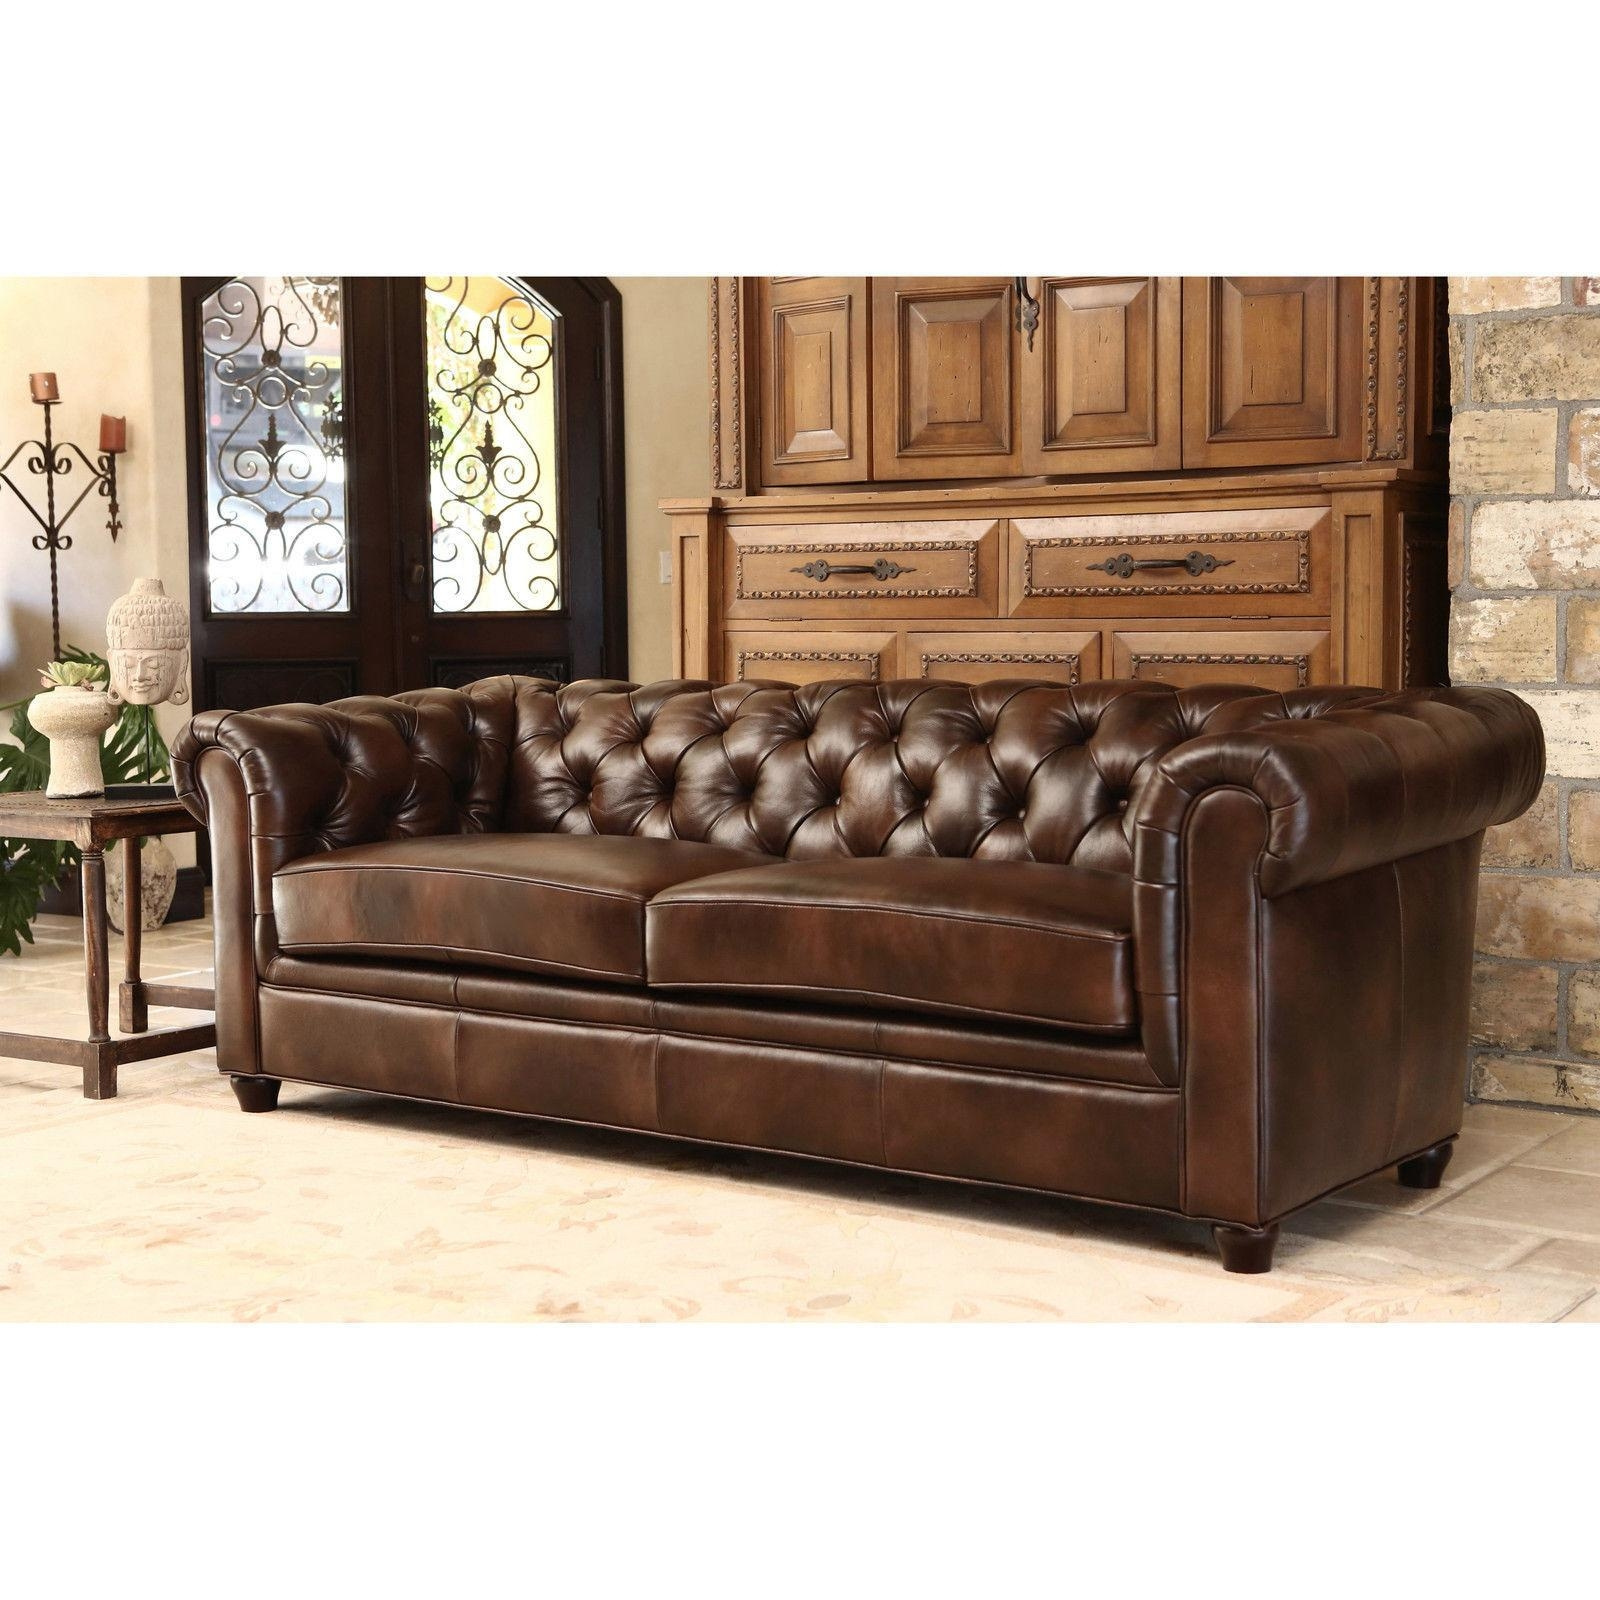 White Leather Tufted Sofa Classic Chesterfield Design Top Grain Regarding Brown Leather Tufted Sofas (View 12 of 20)